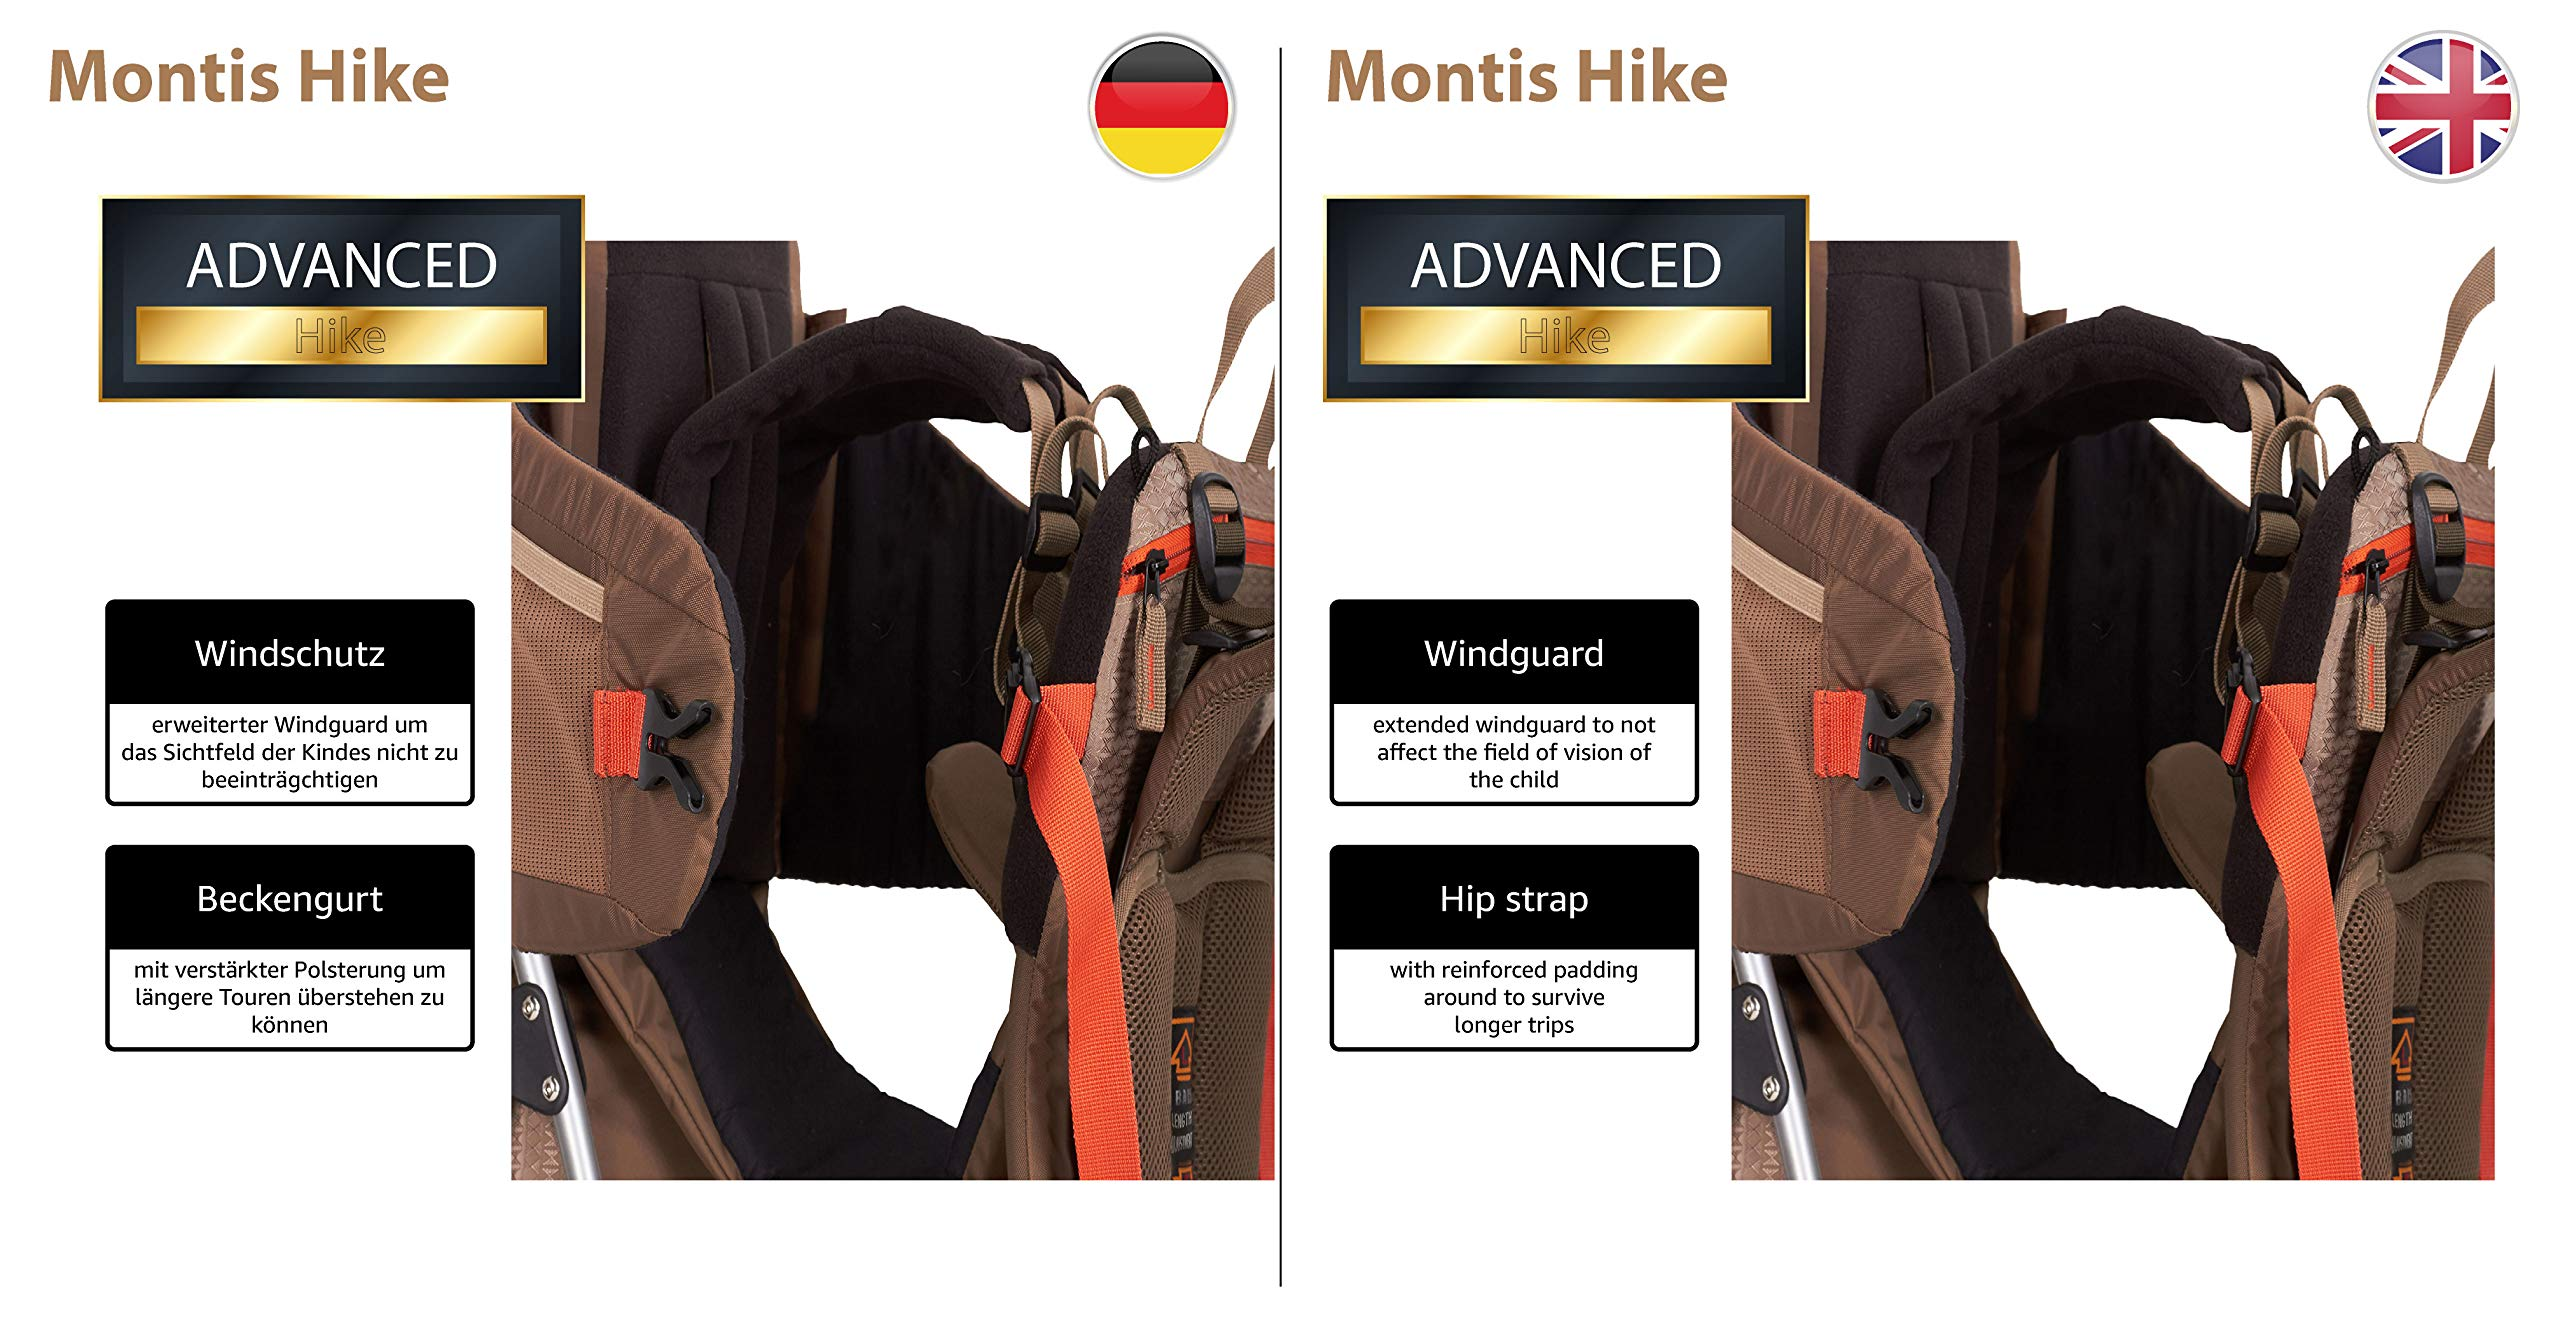 MONTIS HIKE, Premium Back Baby/Child Carrier, Up to 25kg, (mocha) M MONTIS OUTDOOR 89cm high, 37cm wide | up to 25kg | various colours | 28L seat bag Laminated and dirt-repellant outer material | approx. 2.2kg (without extras) Fully-adjustable, padded 5-point child's safety harness | plush lining, raised wind guard, can be filled from both sides | forehead cushion 7